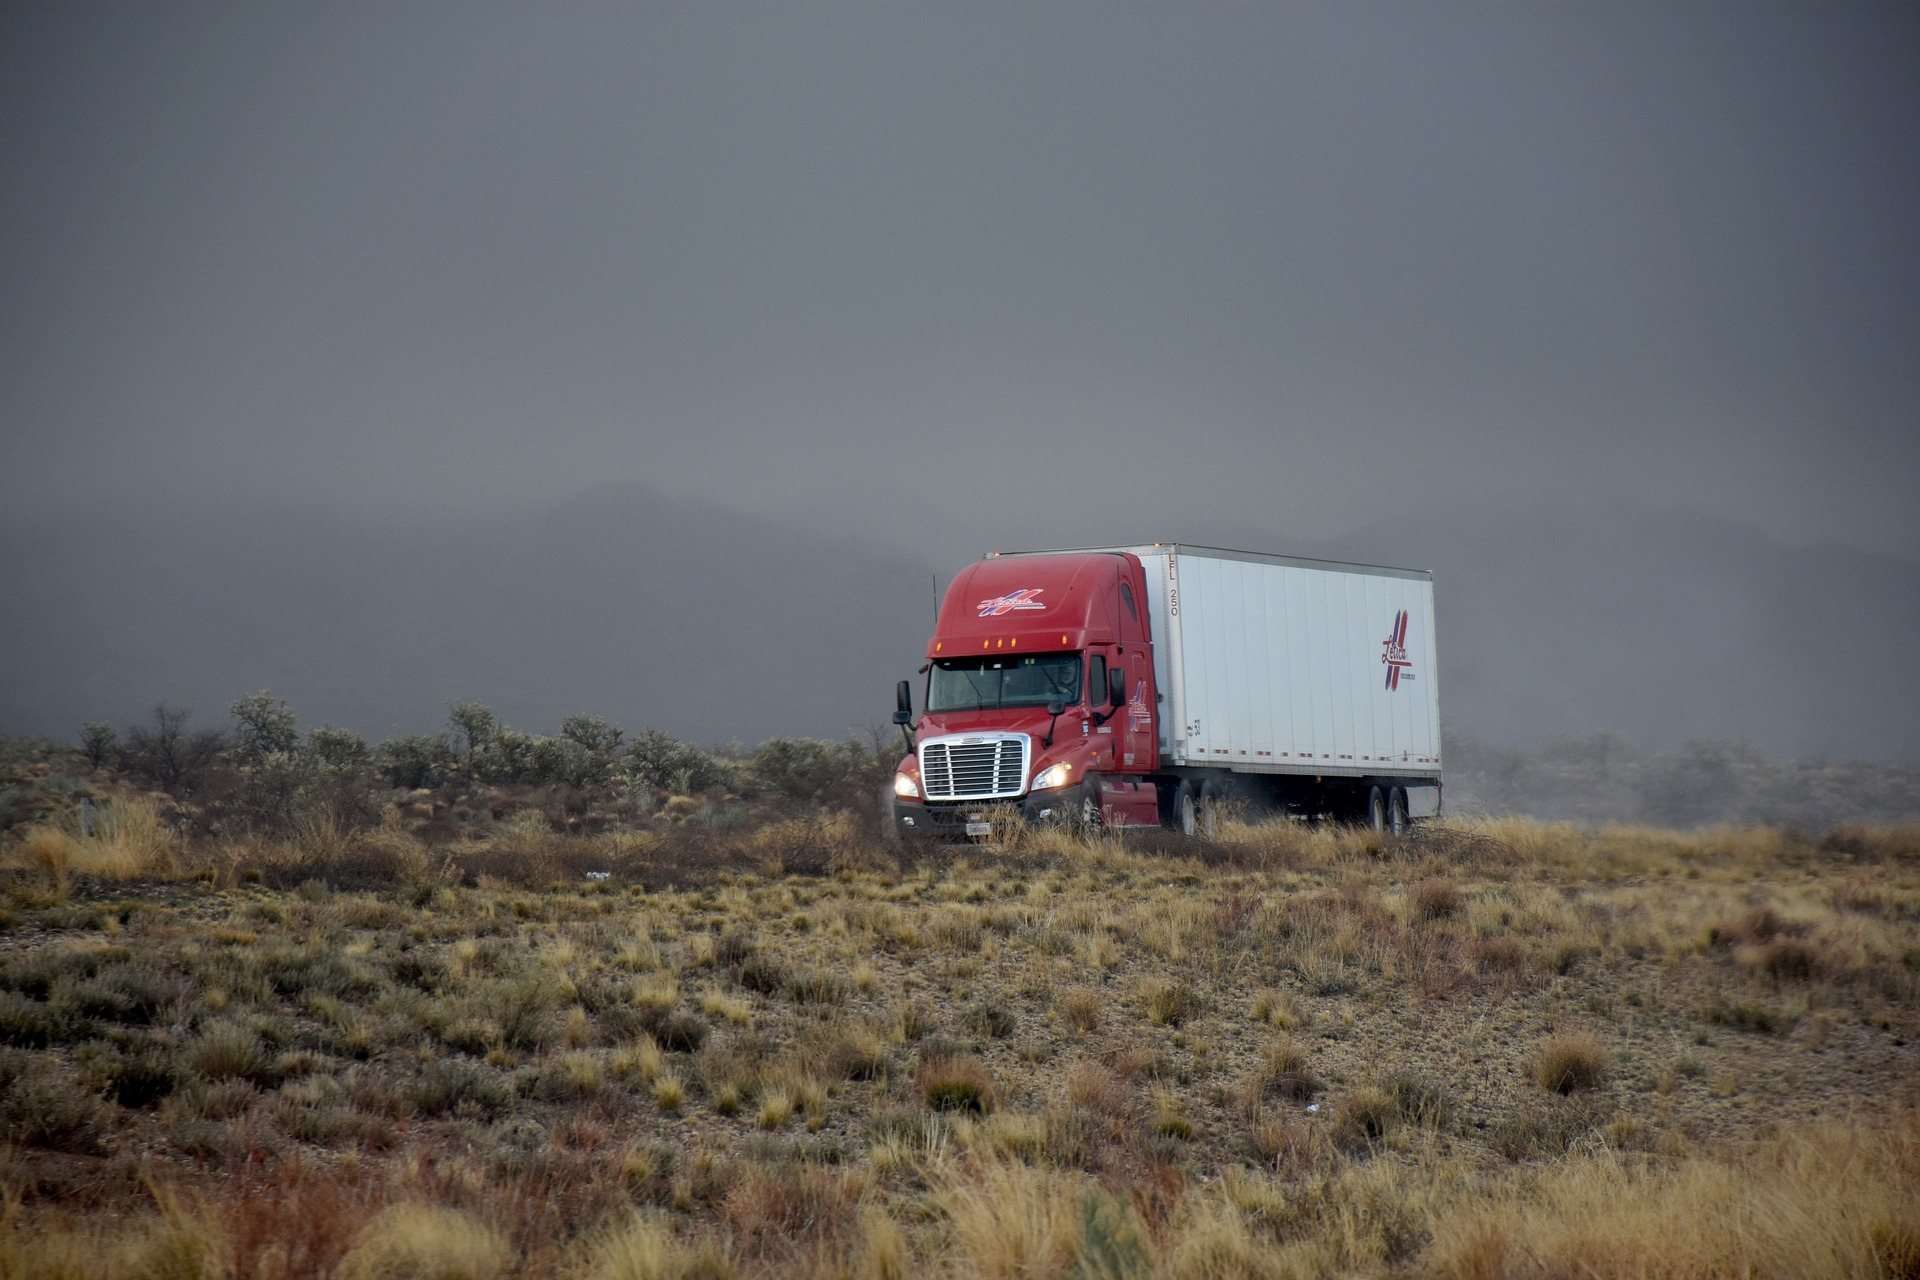 moody picture of a semi truck